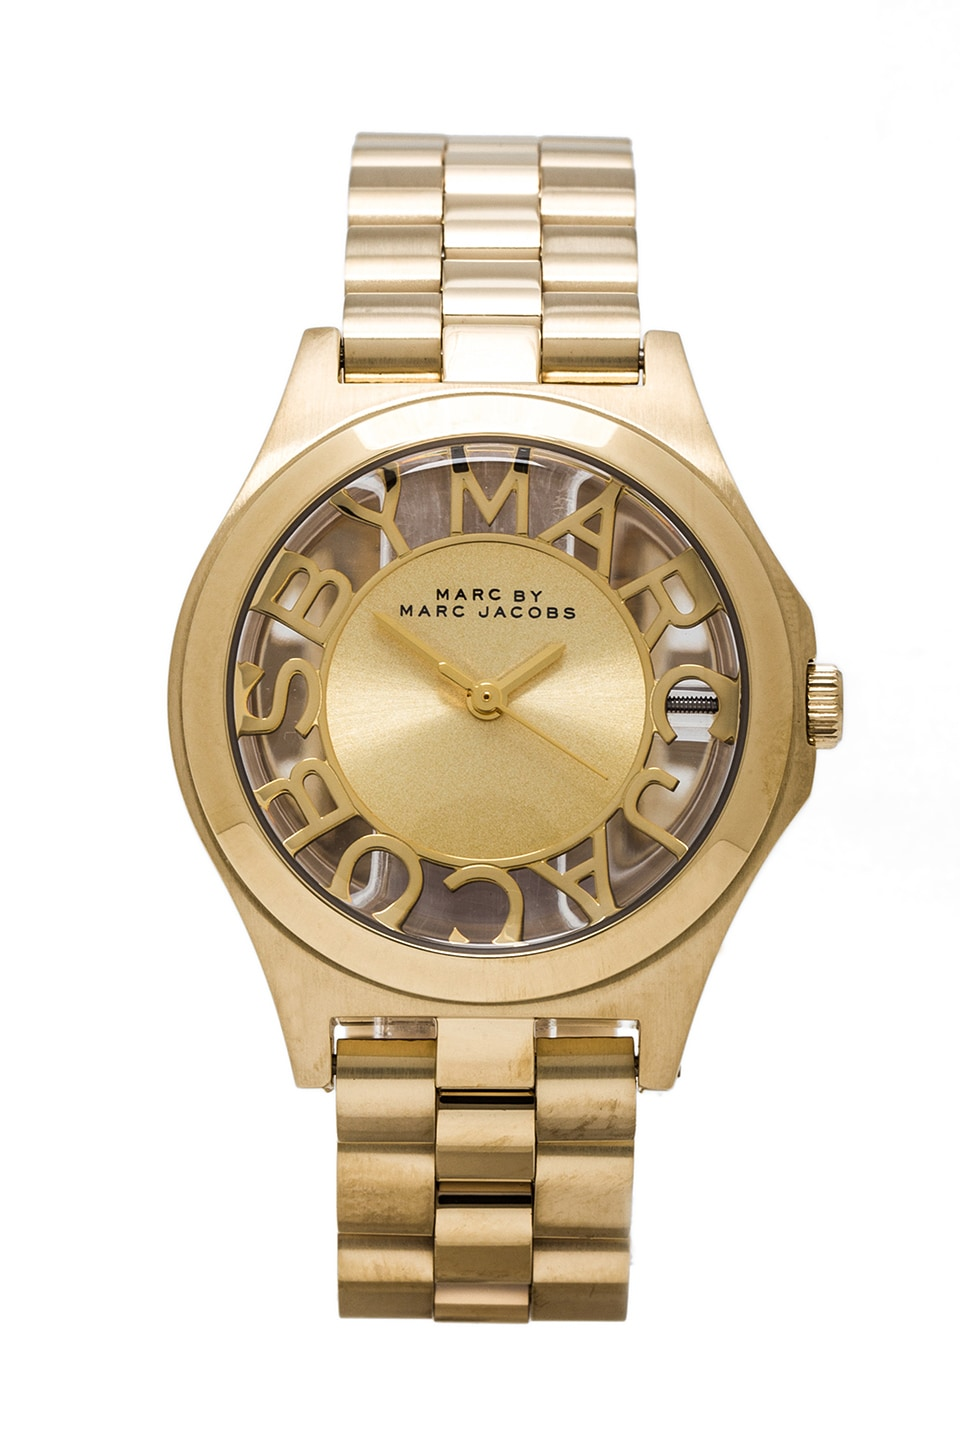 Marc by Marc Jacobs Henry Skeleton Watch in Gold & Gold